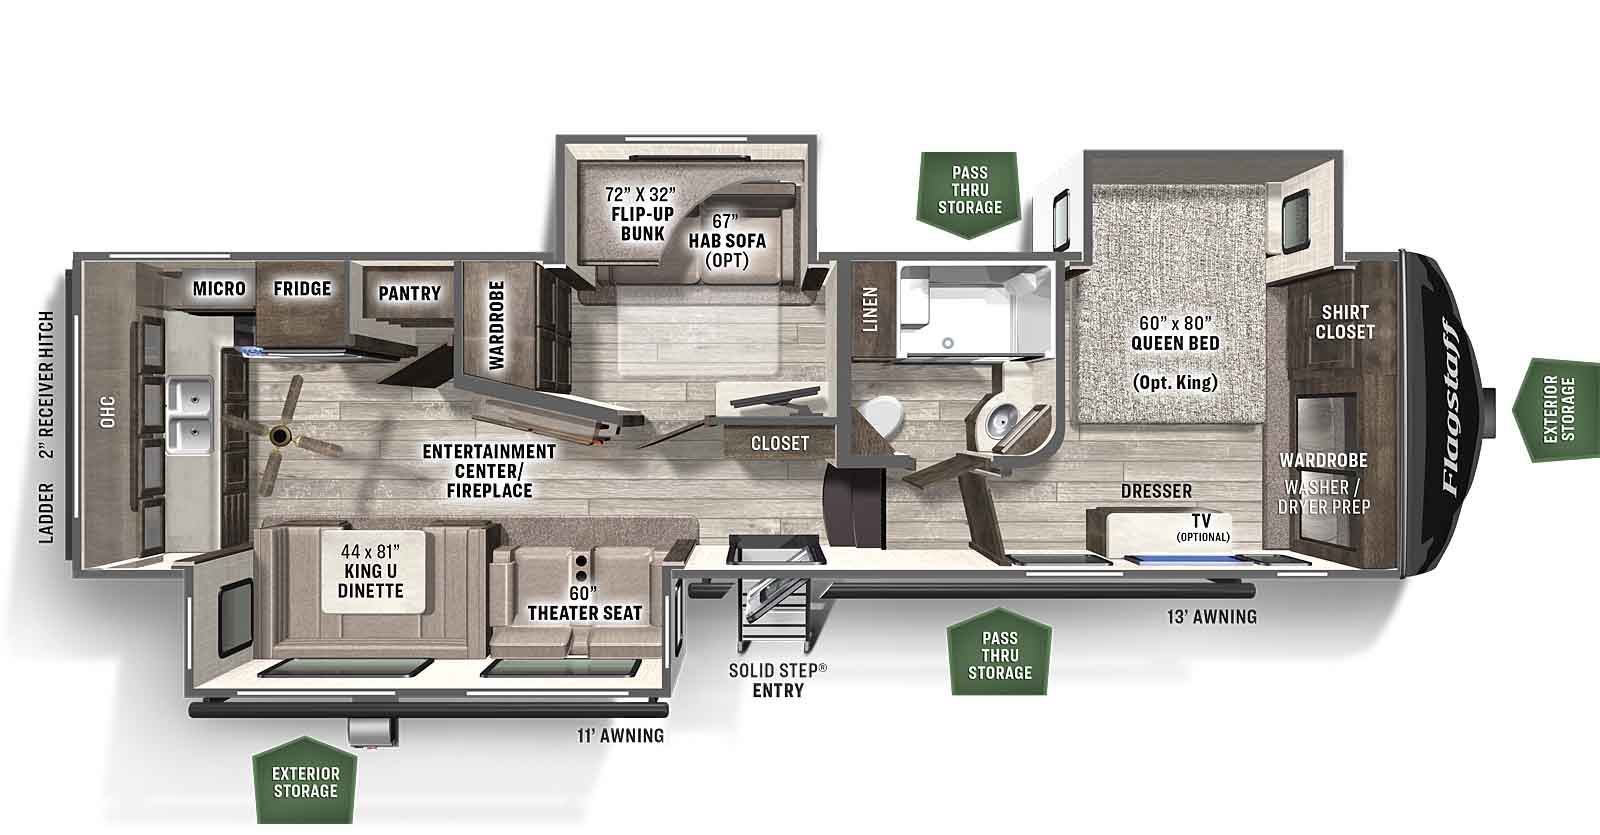 Flagstaff Super Lite Forest River Rv Manufacturer Of Travel Trailers Fifth Wheels Tent Campers Motorhomes